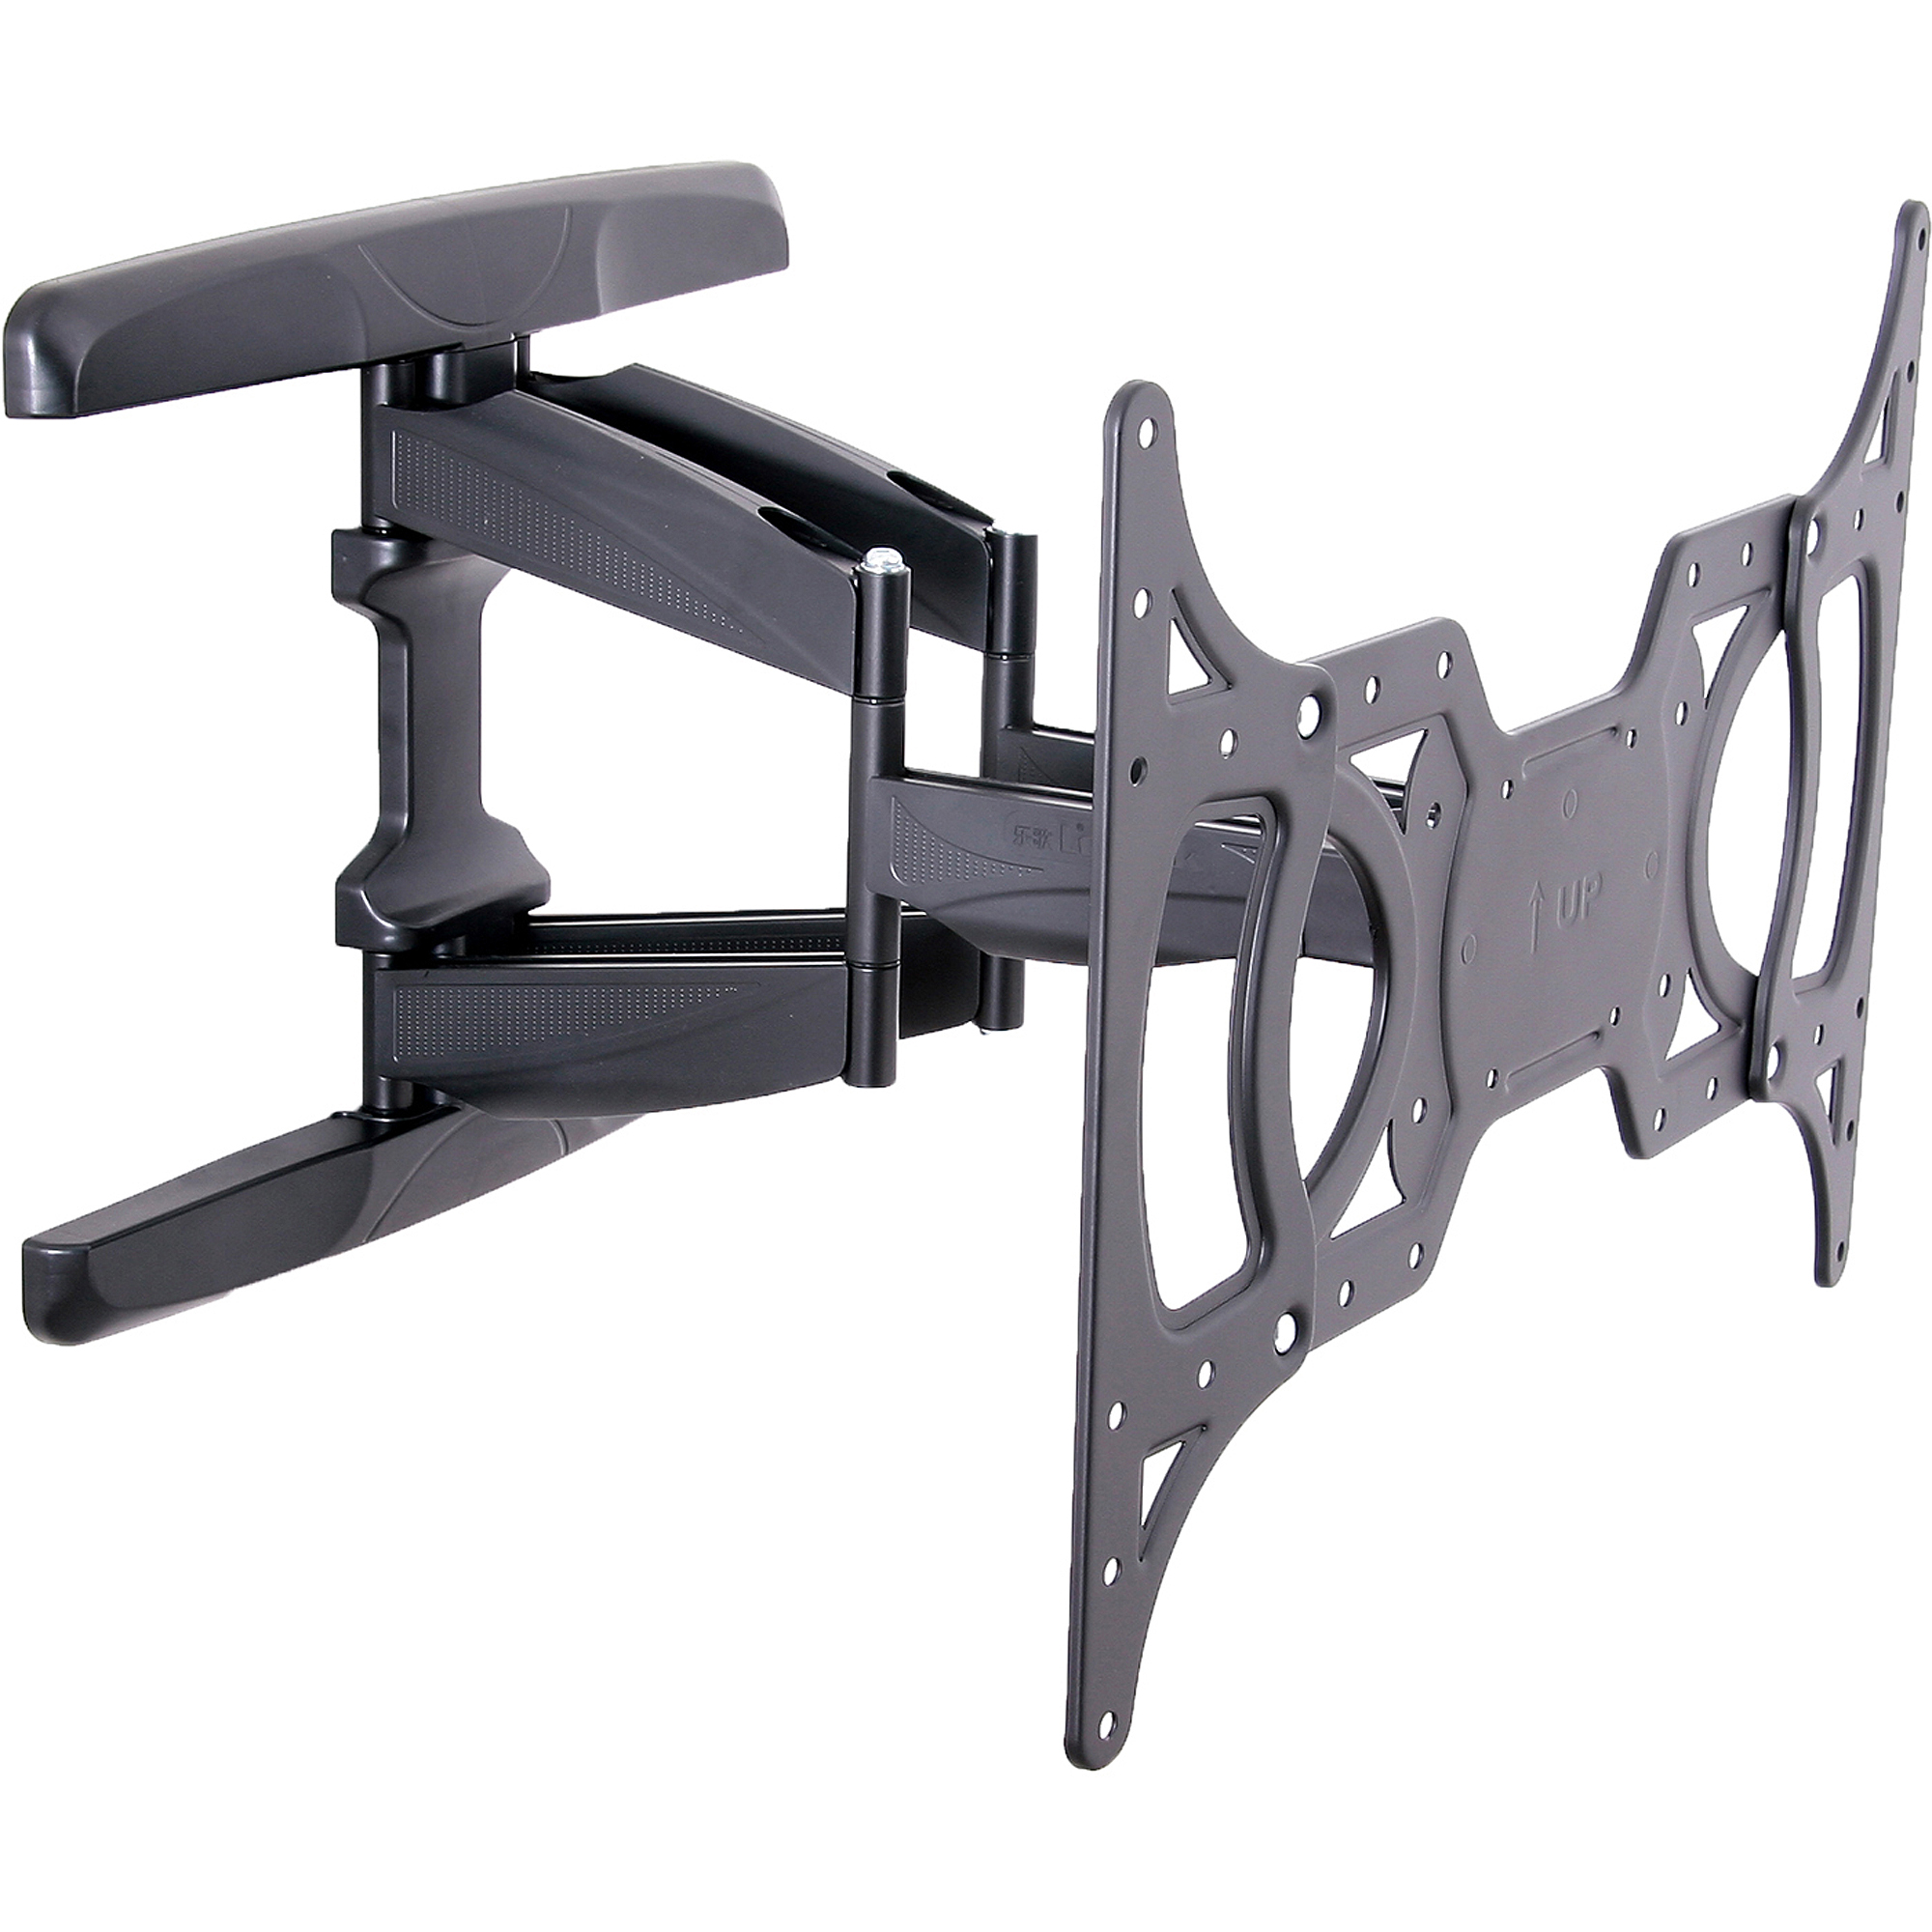 "V7 Heavy-Duty Low-Profile Articulating Wall Mount for 32""-65"" Displays"